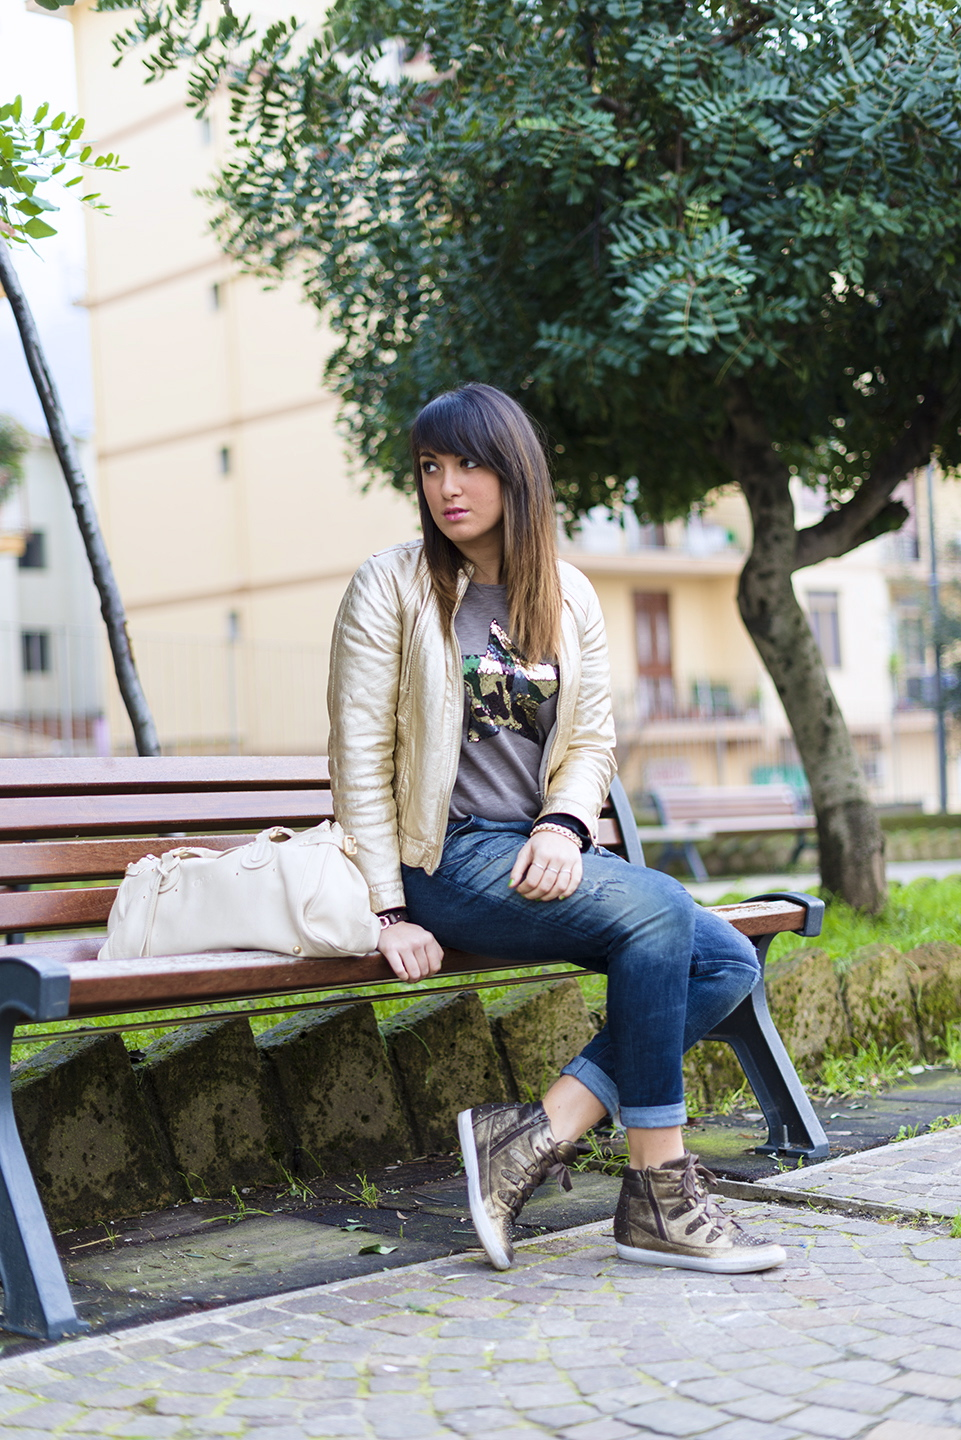 My Glamour Attitude, Outfit, Risskio, Khriò, Diesel, Look, Fashion Blog, Sporty, Casual